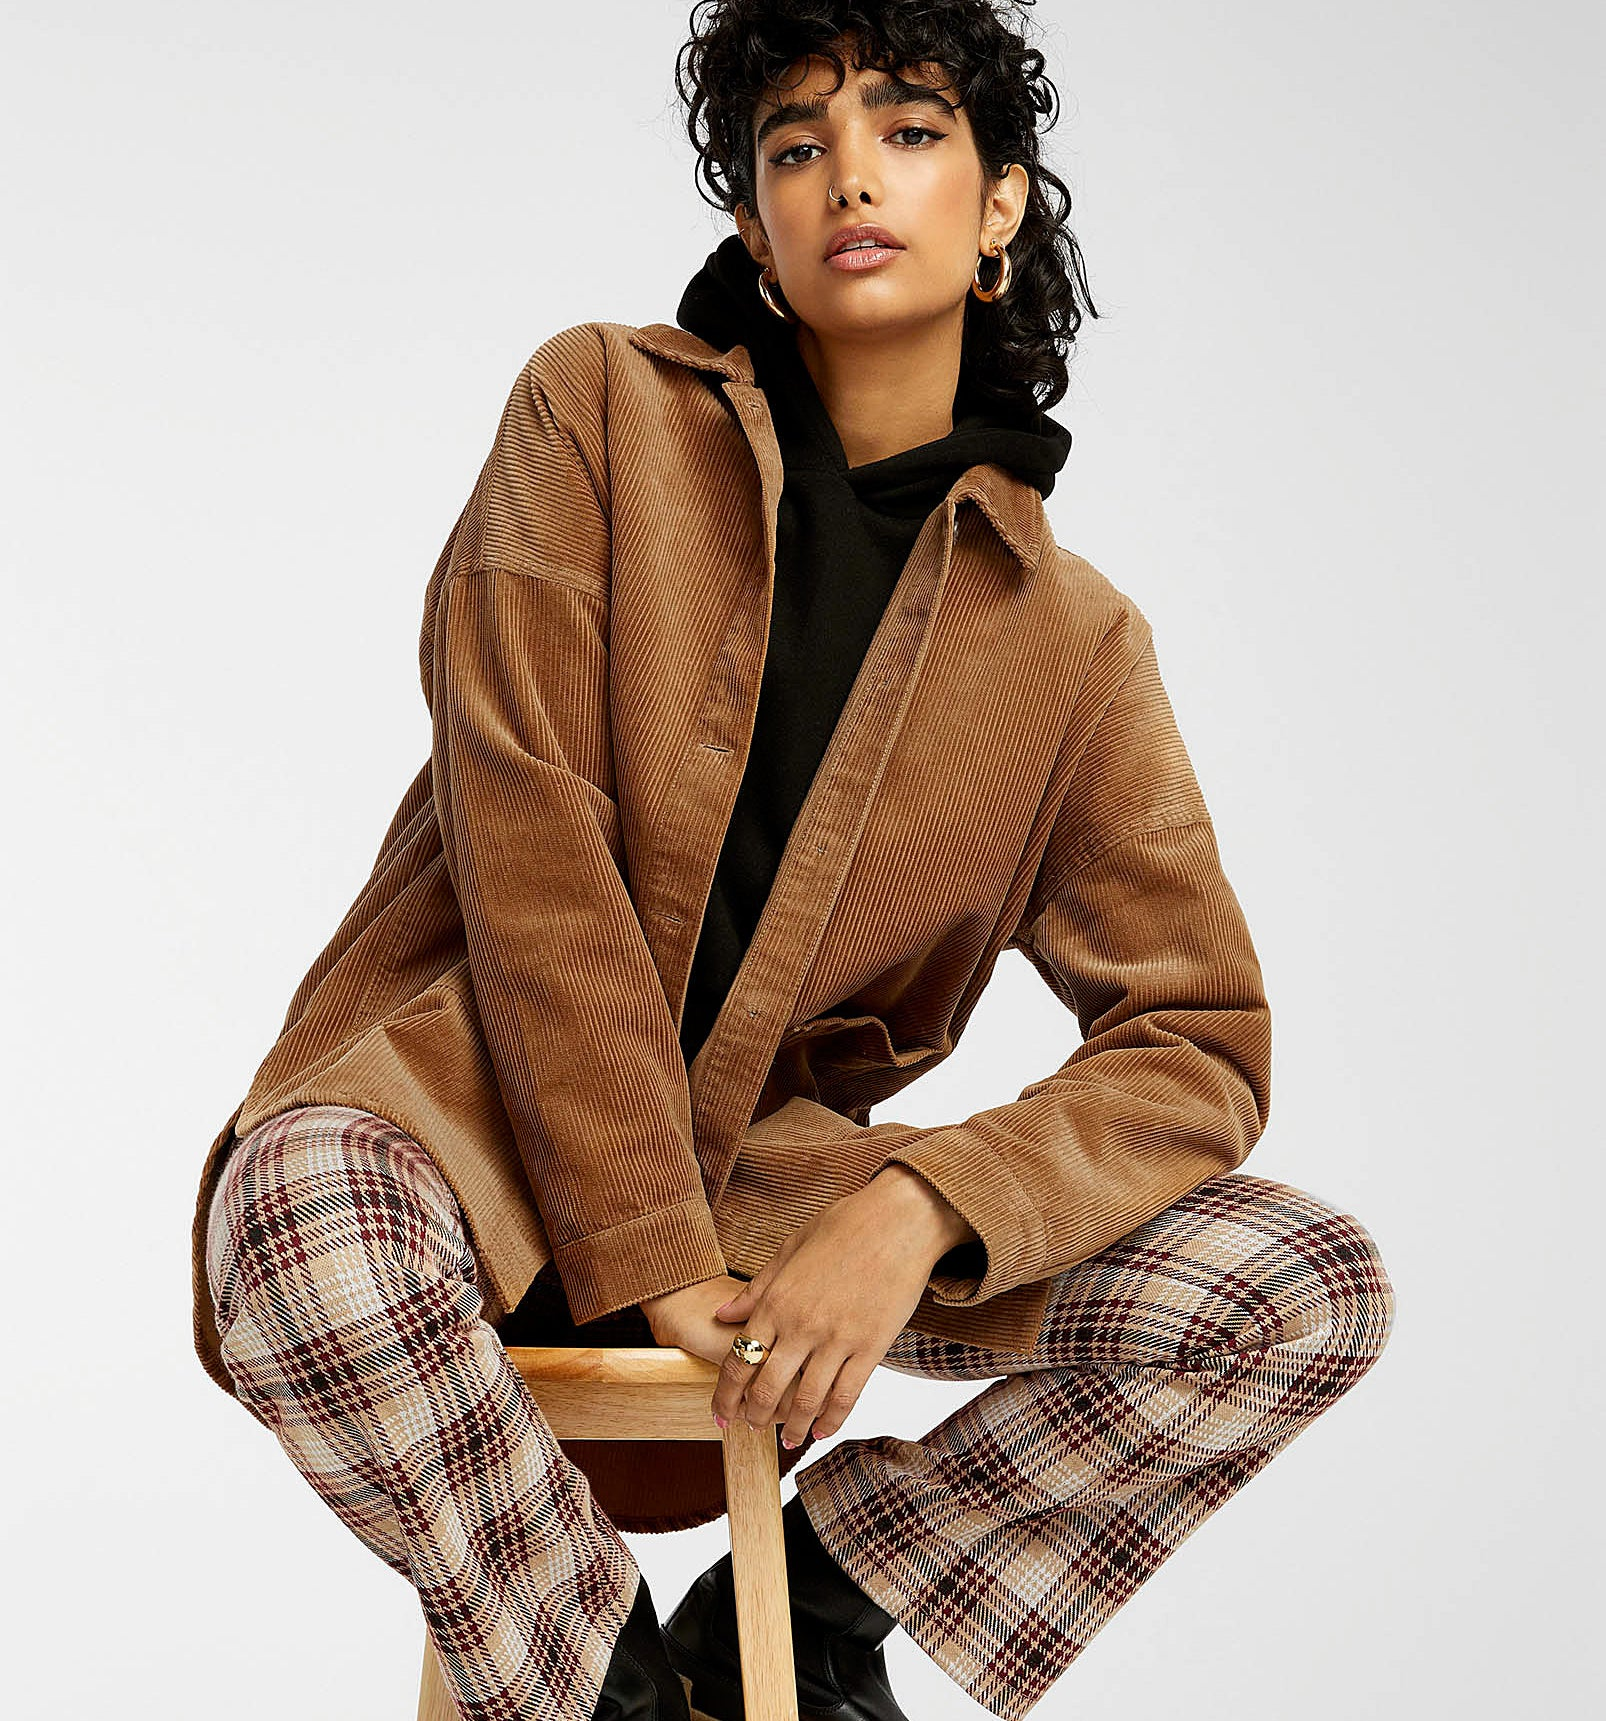 a person sitting on a stool wearing the corduroy jacket with checkered pants and rain boots